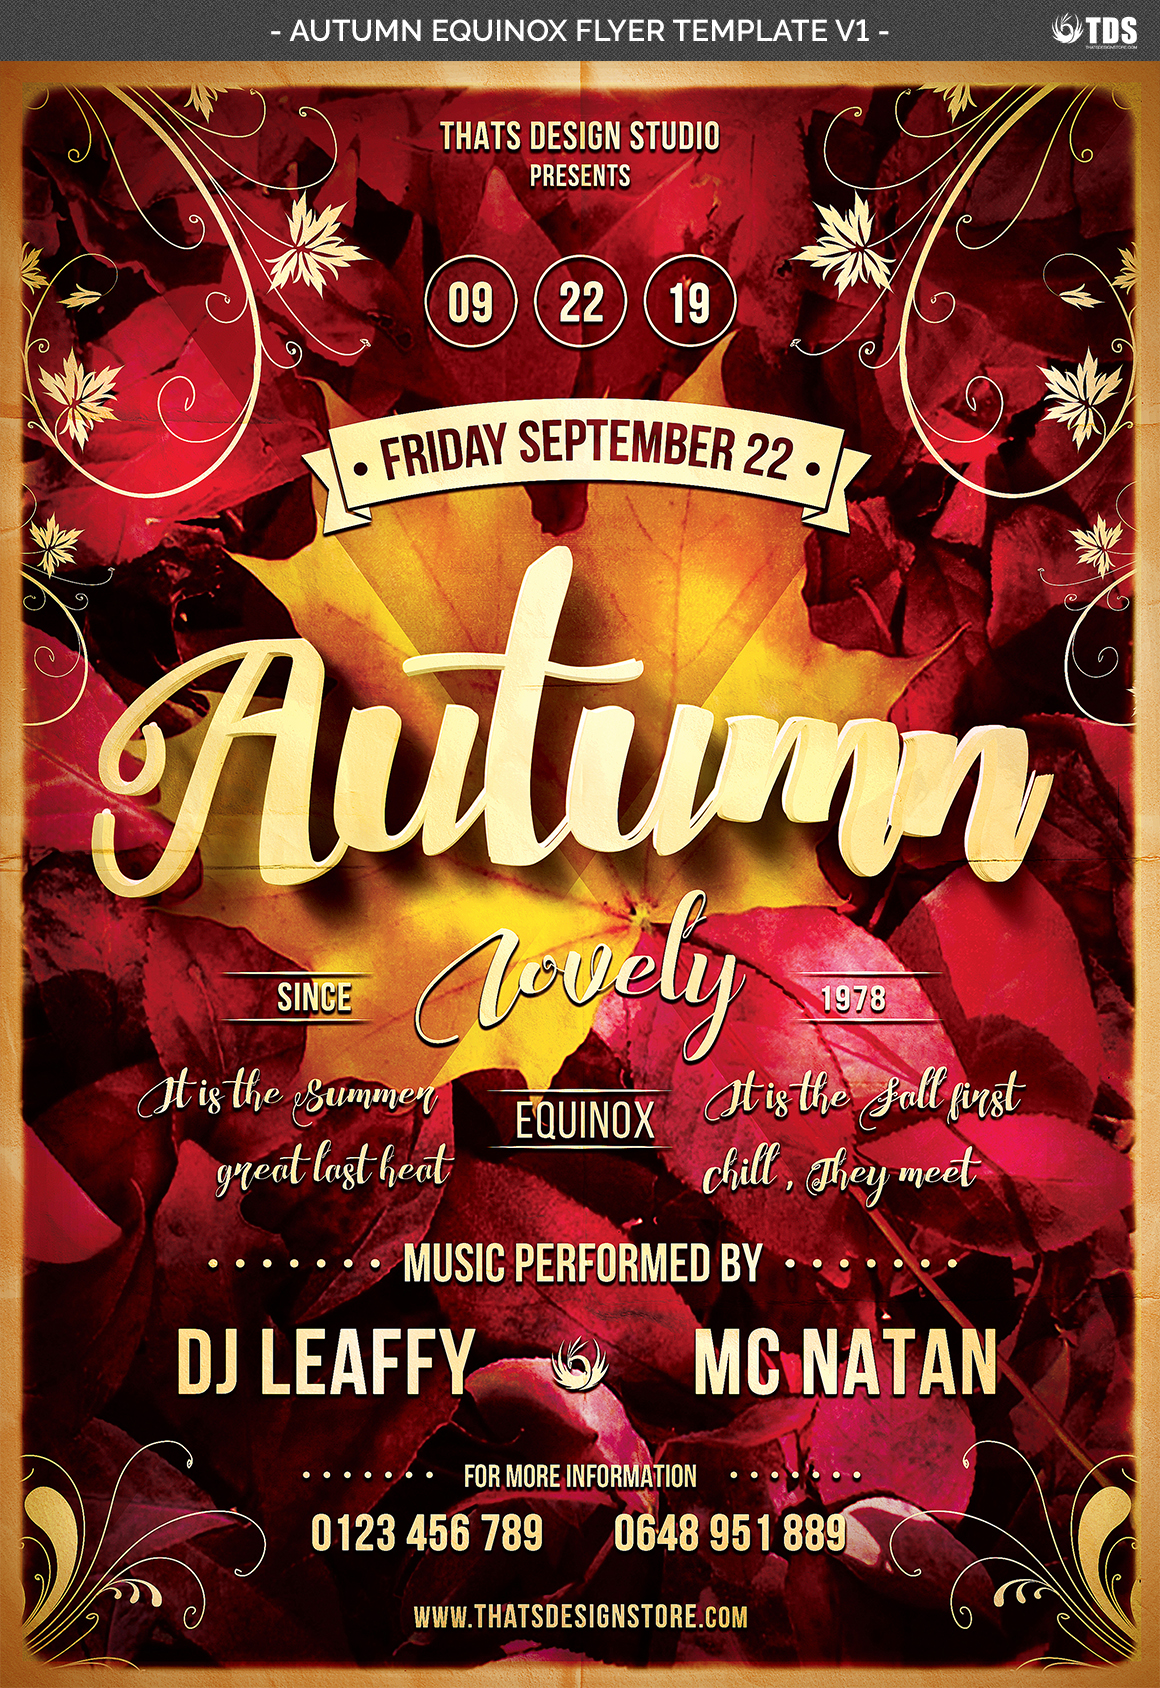 Autumn Equinox Flyer Template V1 example image 7